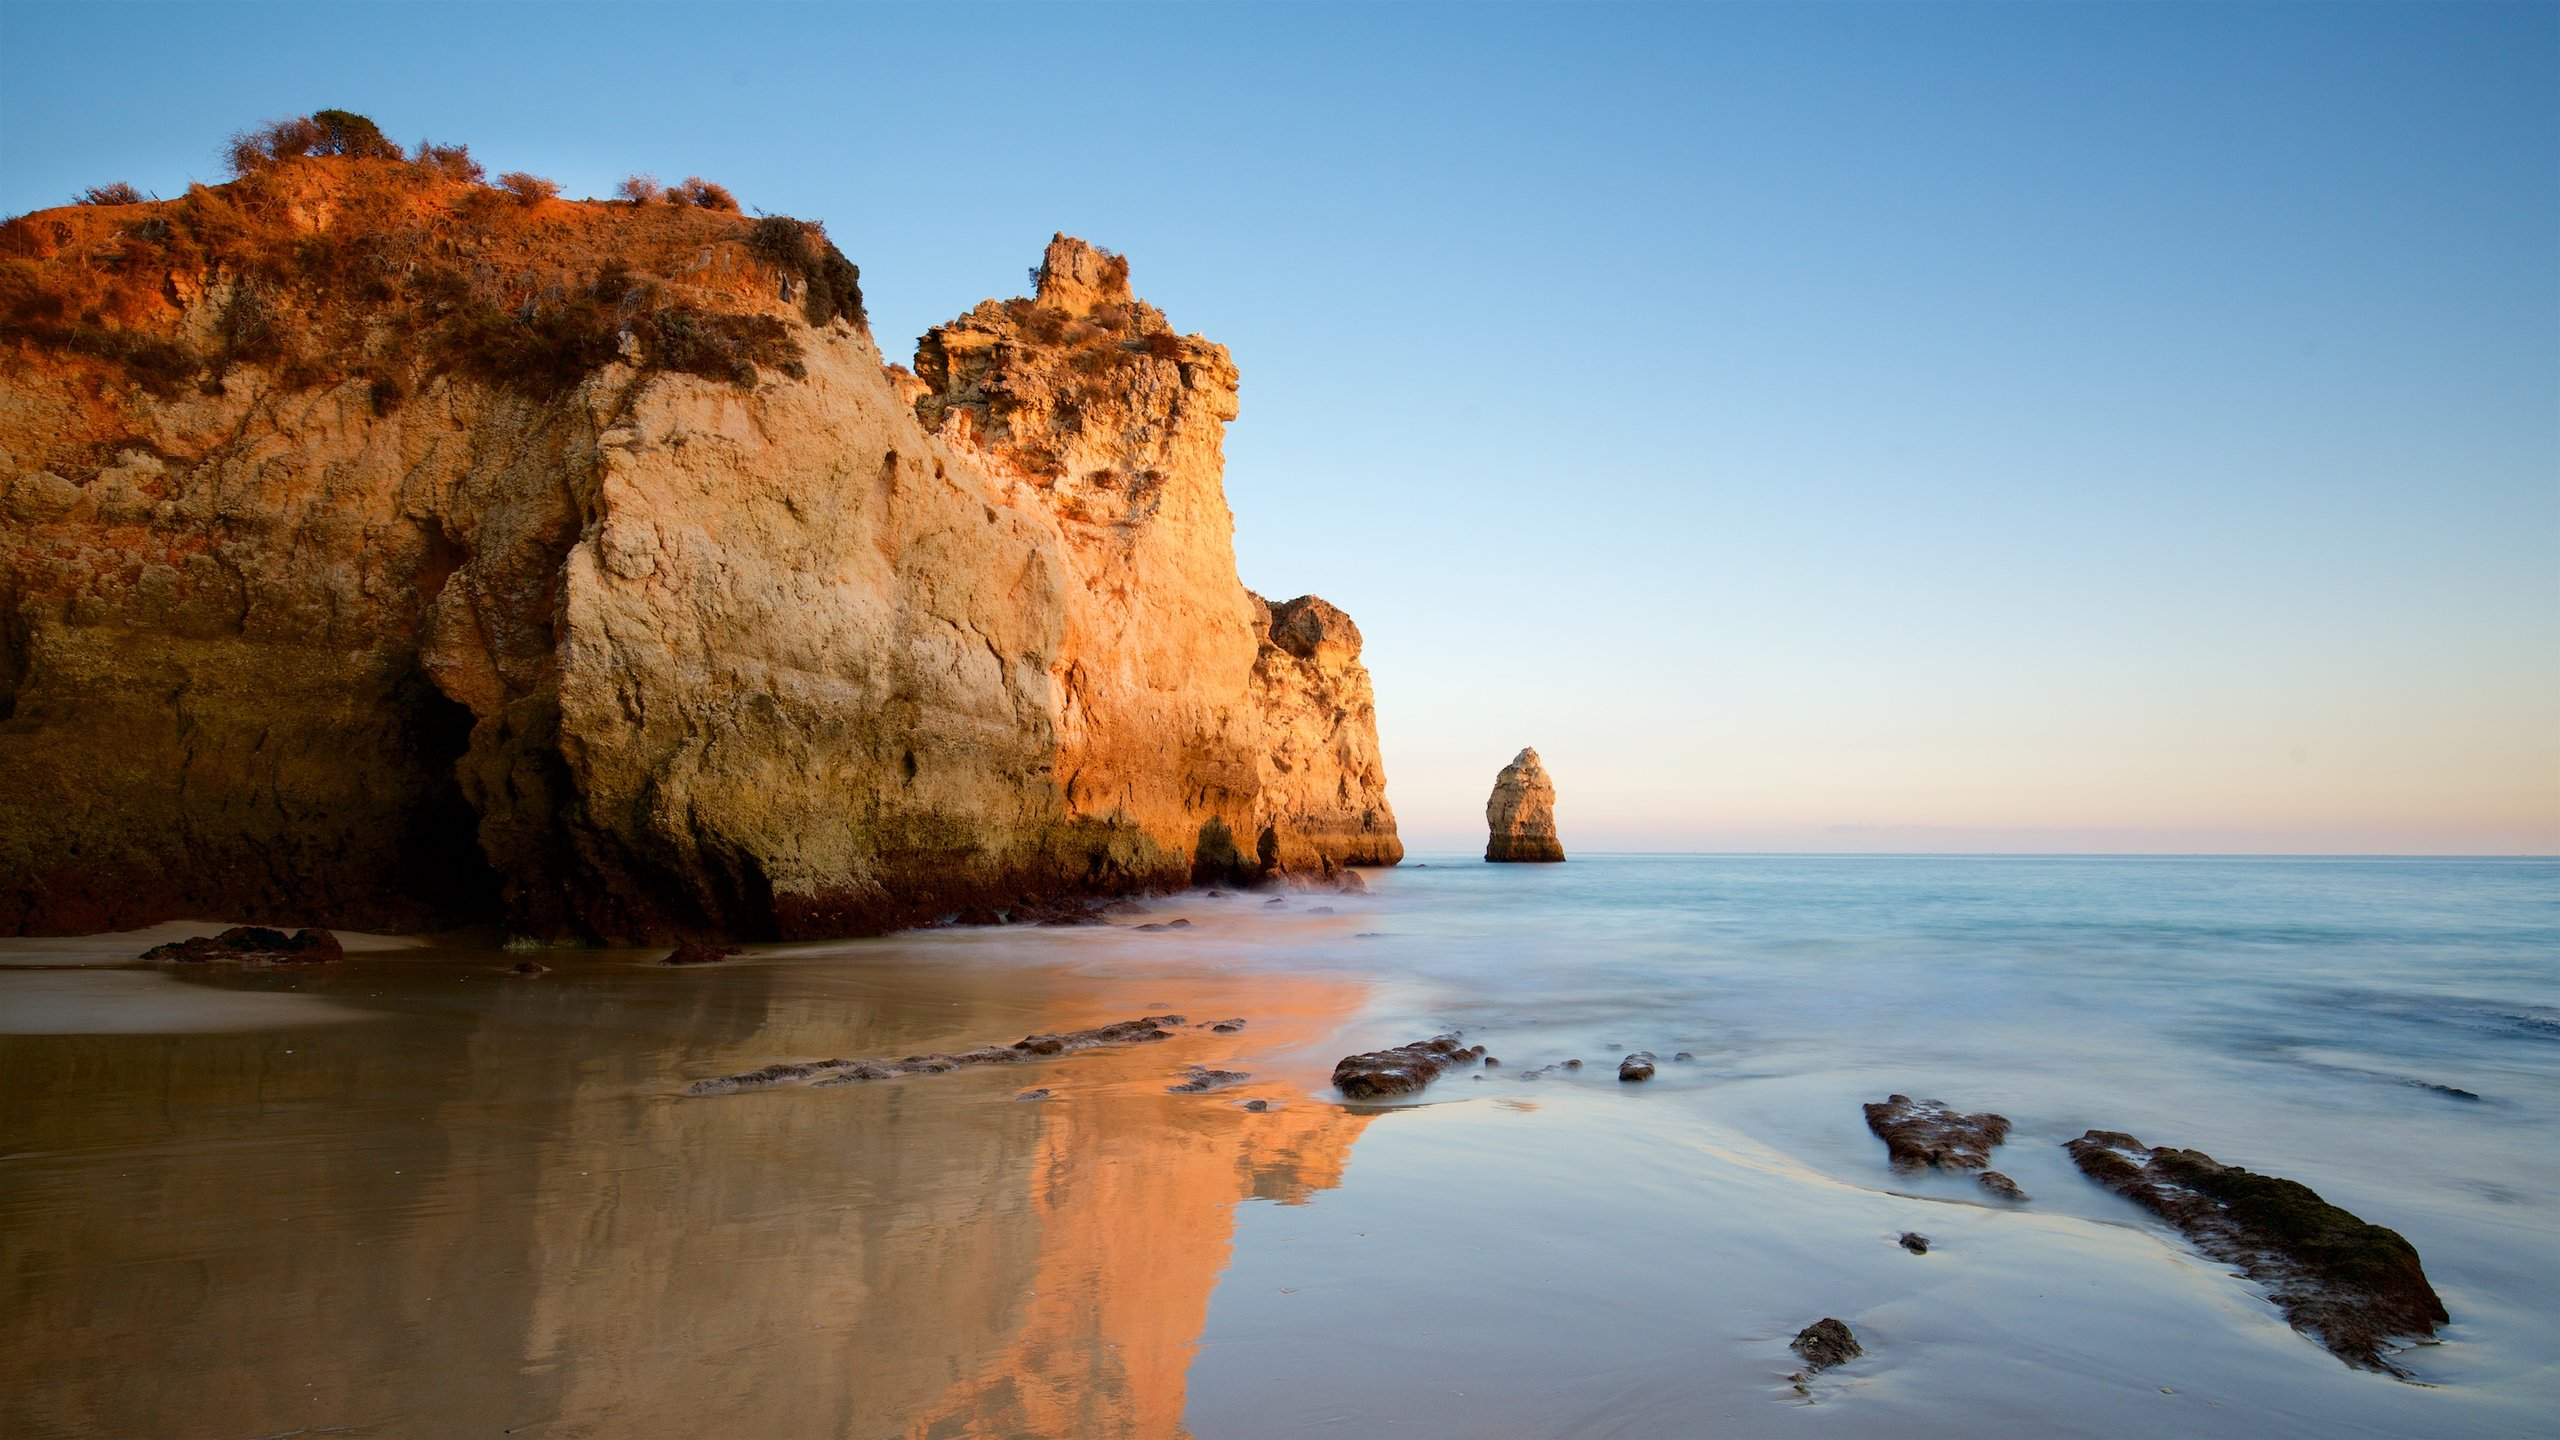 Bring your camera to photograph this striking beach, which is dotted with large, eye-catching rocks that provide shade and shelter, and harbor several caves.